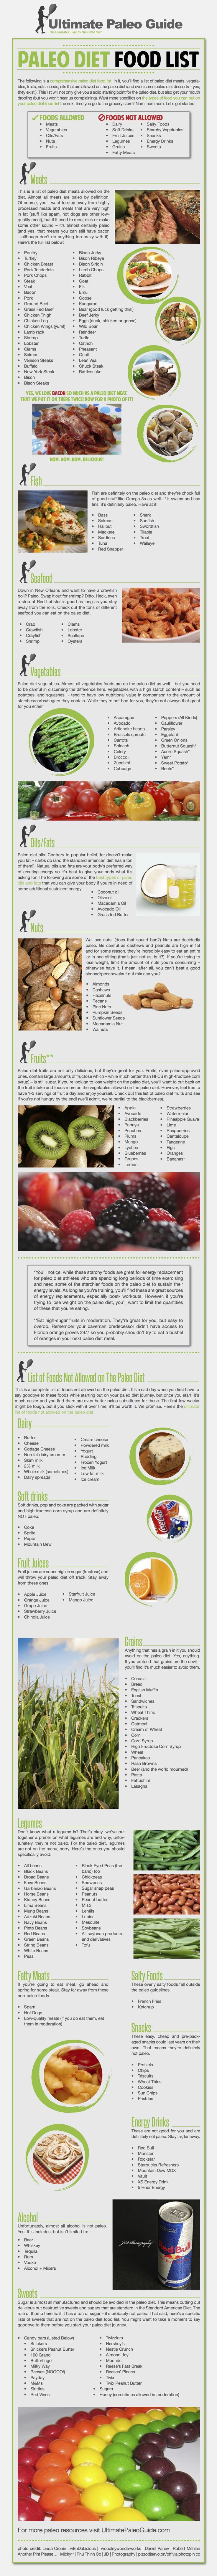 Best 267 paleo inspirations ideas on pinterest cooking food paleo diet plan leads to health food recipes and good diet meals low carb no carb recipes infographics daily nutritional science news to help you forumfinder Images